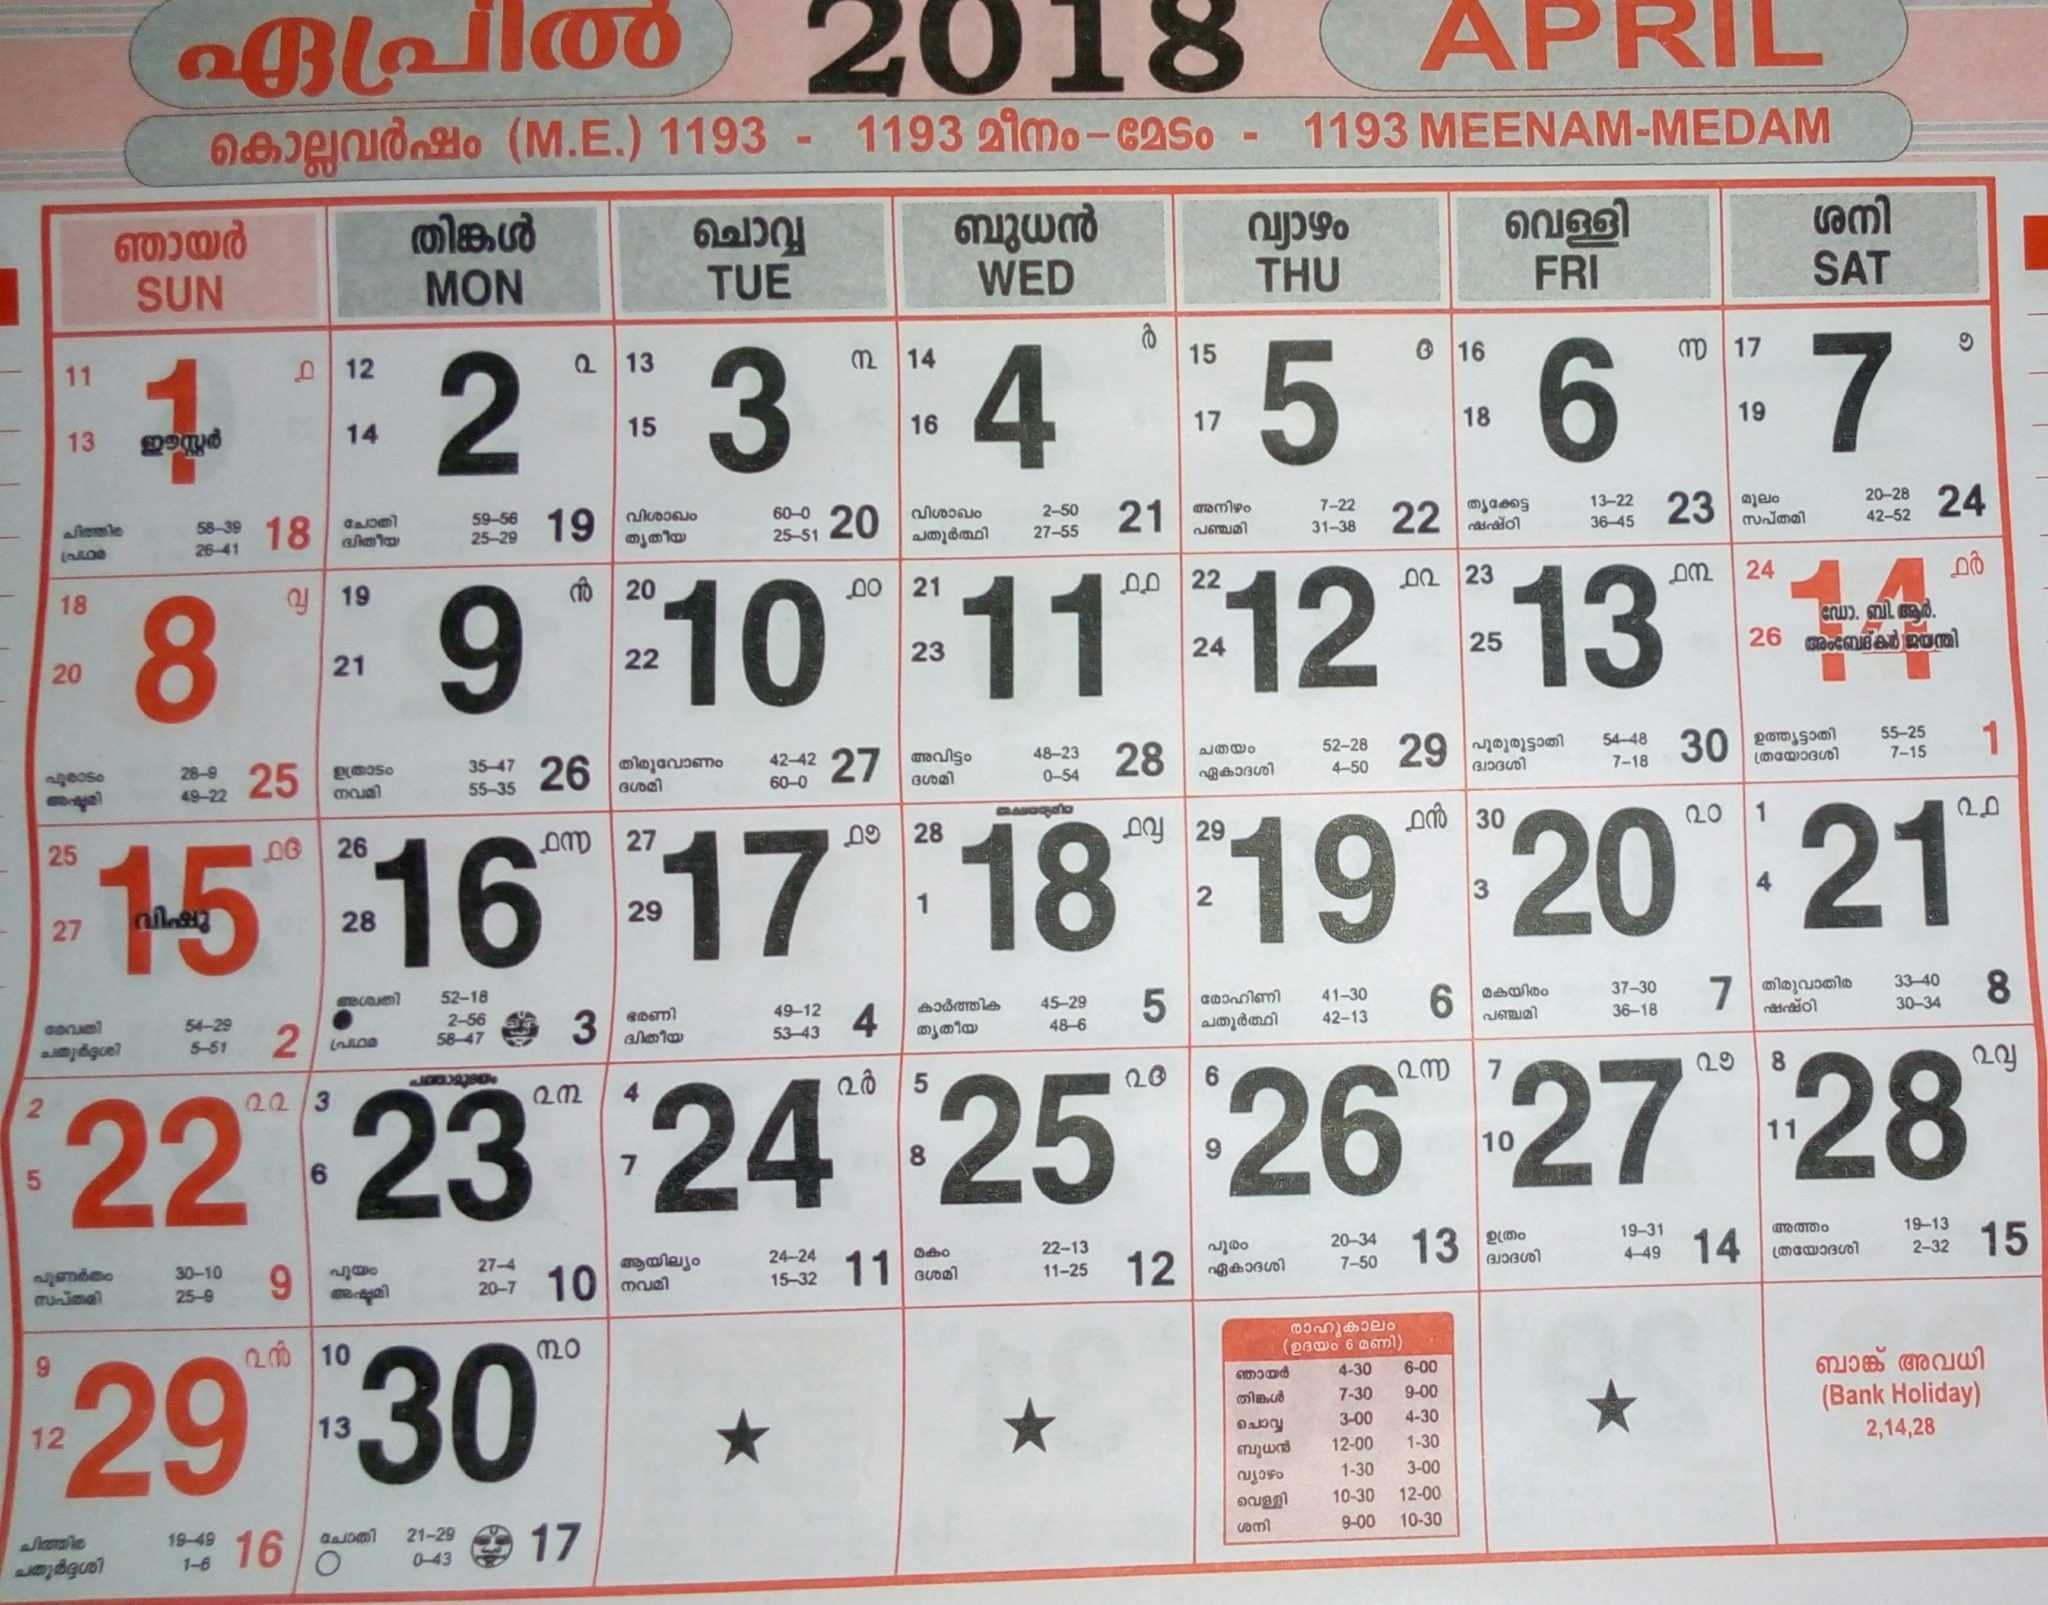 april 2018 calendar malayalam brilliant pdf mightymic malayalam calendar 2018 pdf manorama